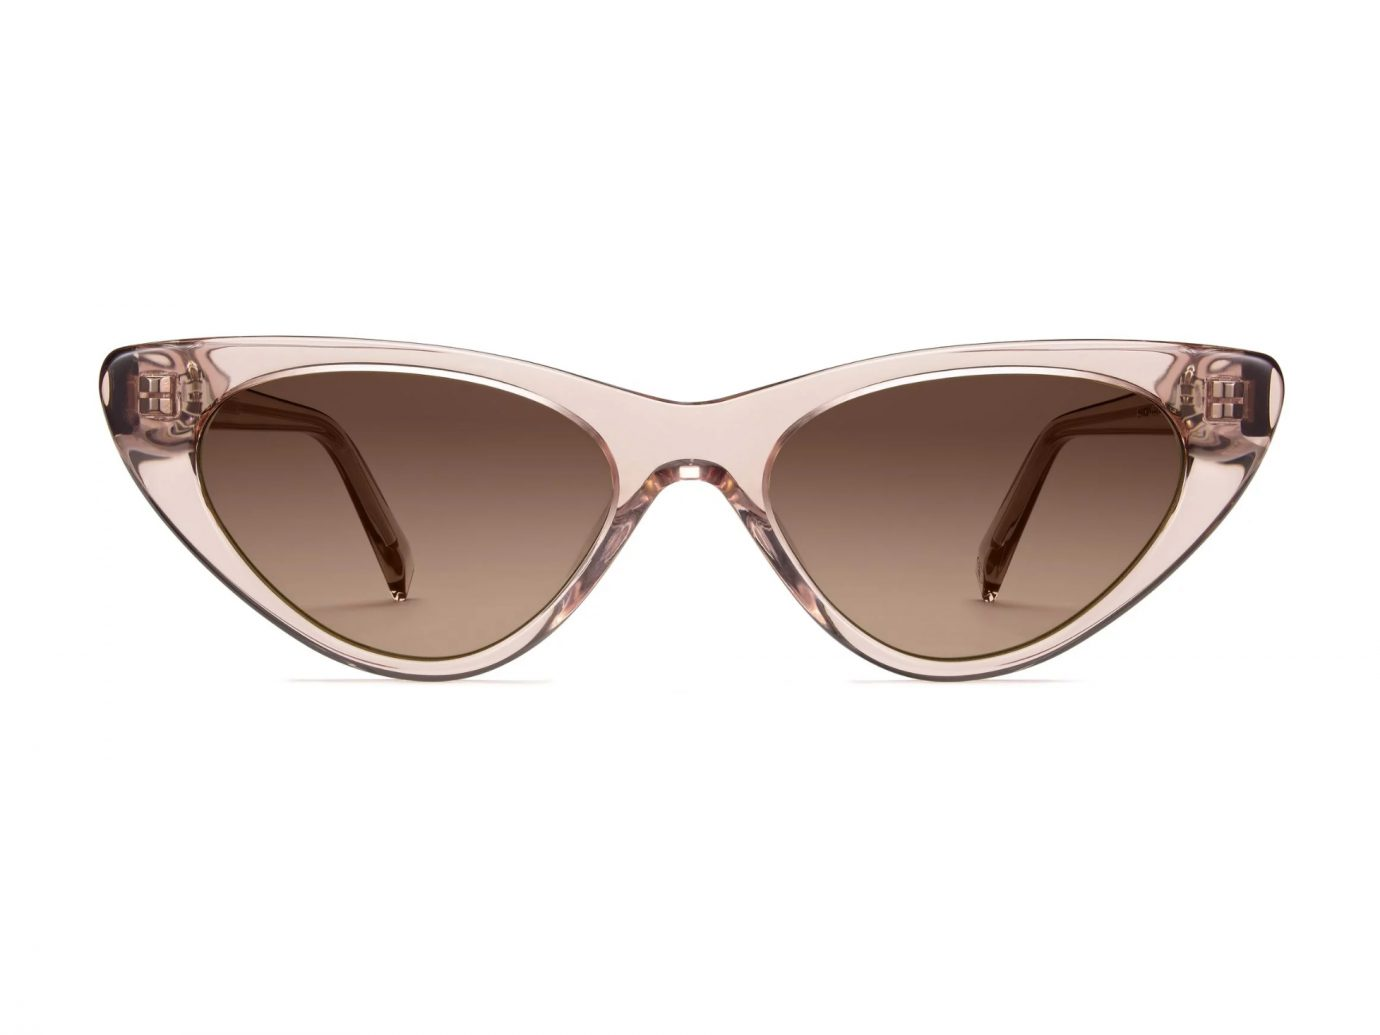 warby parker Astrid Sunglasses in Rose Water